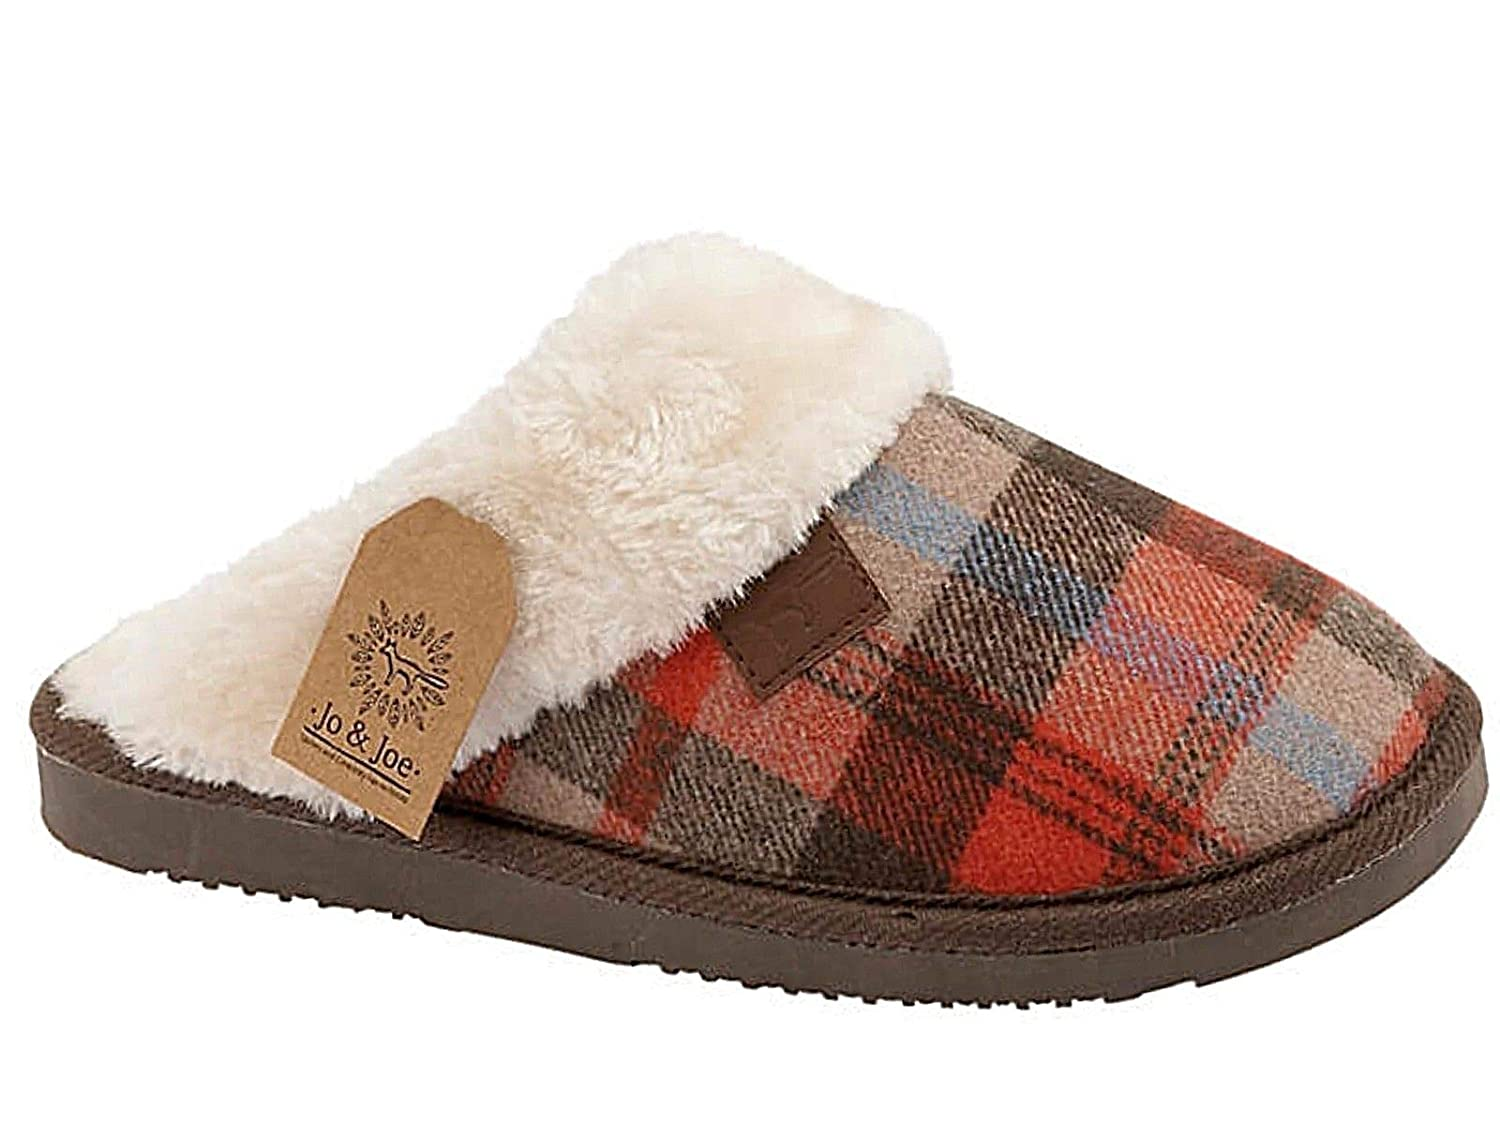 Sky_Walker_df , pour Brown Chaussons pour Femme Brown Sky_Walker_df Tartan 74f94e7 - latesttechnology.space